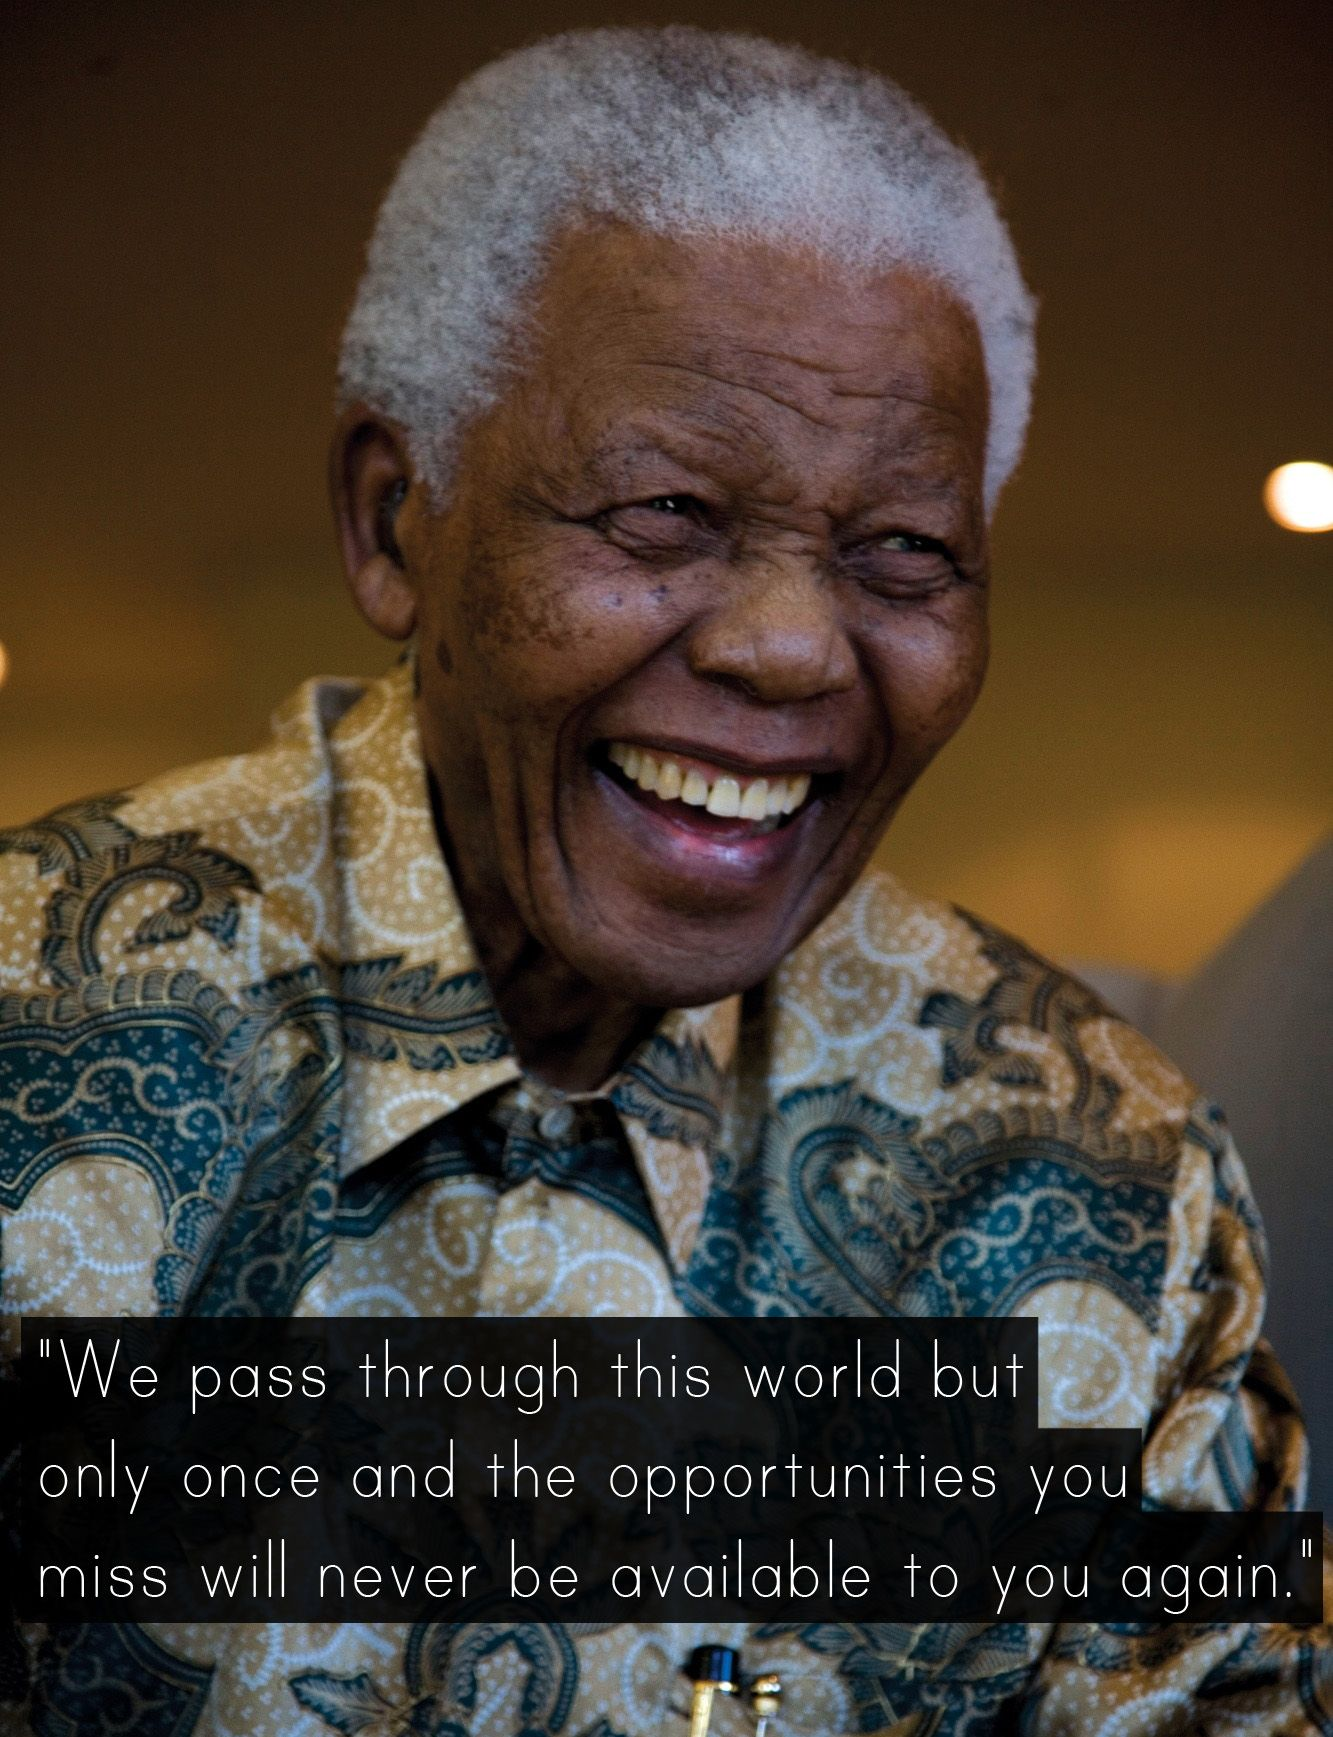 Mandela Deepest Fear Quote Poster Images Of Nelson Mandela S 93rd